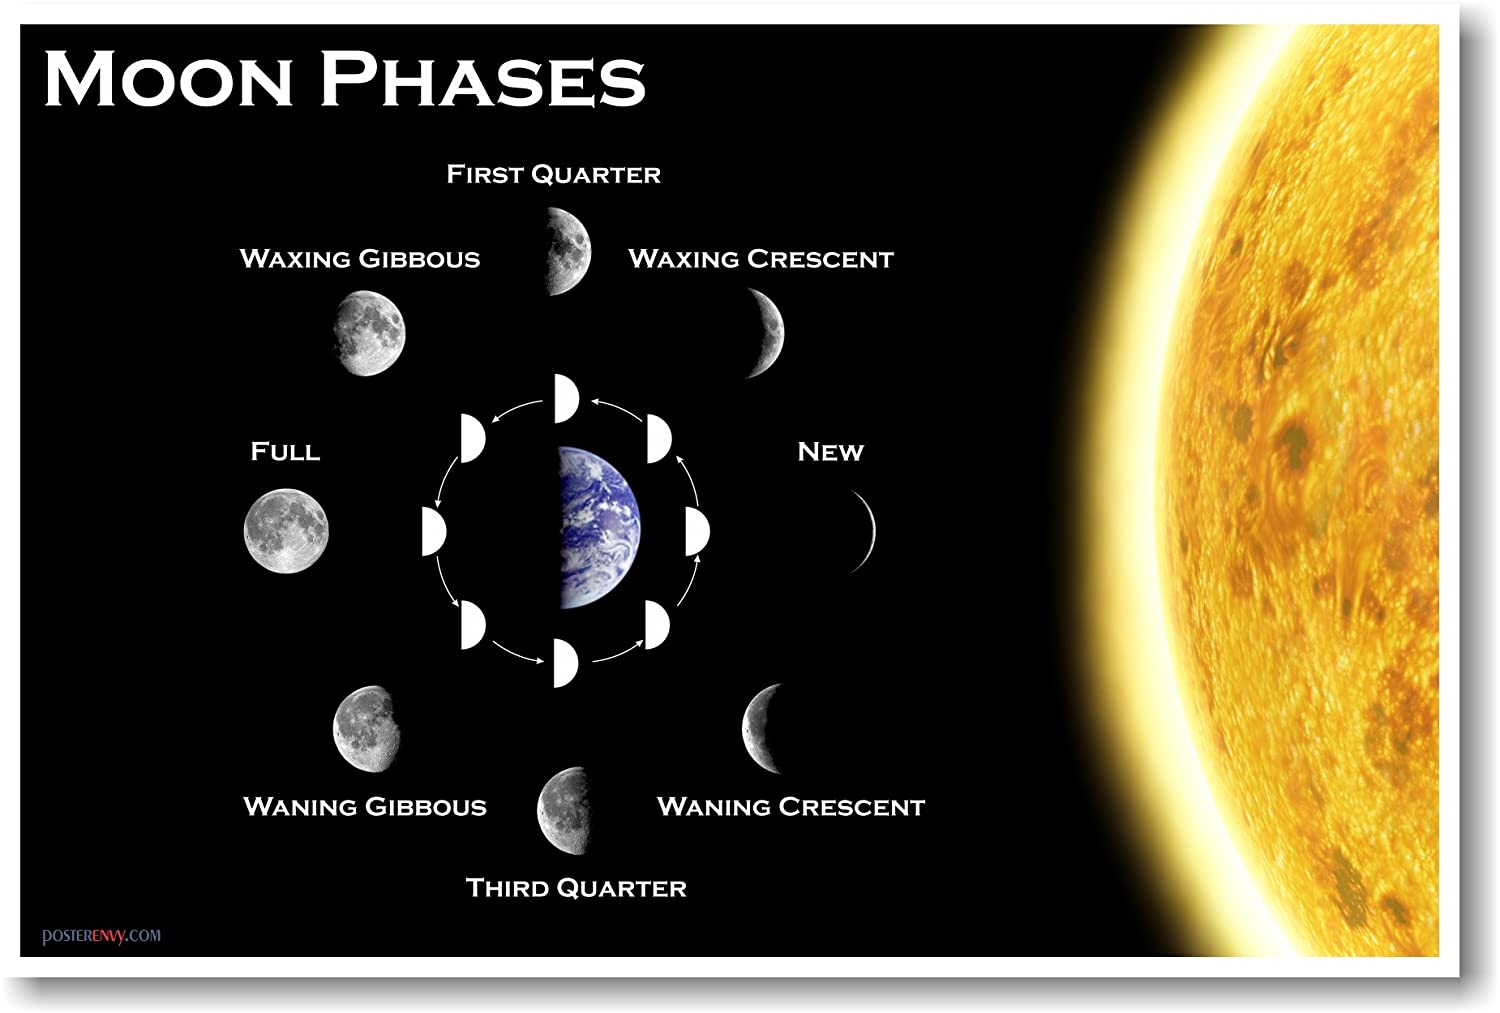 Moon Phases Classroom Science Poster Prints Posters Phase Diagram 3 Lunar